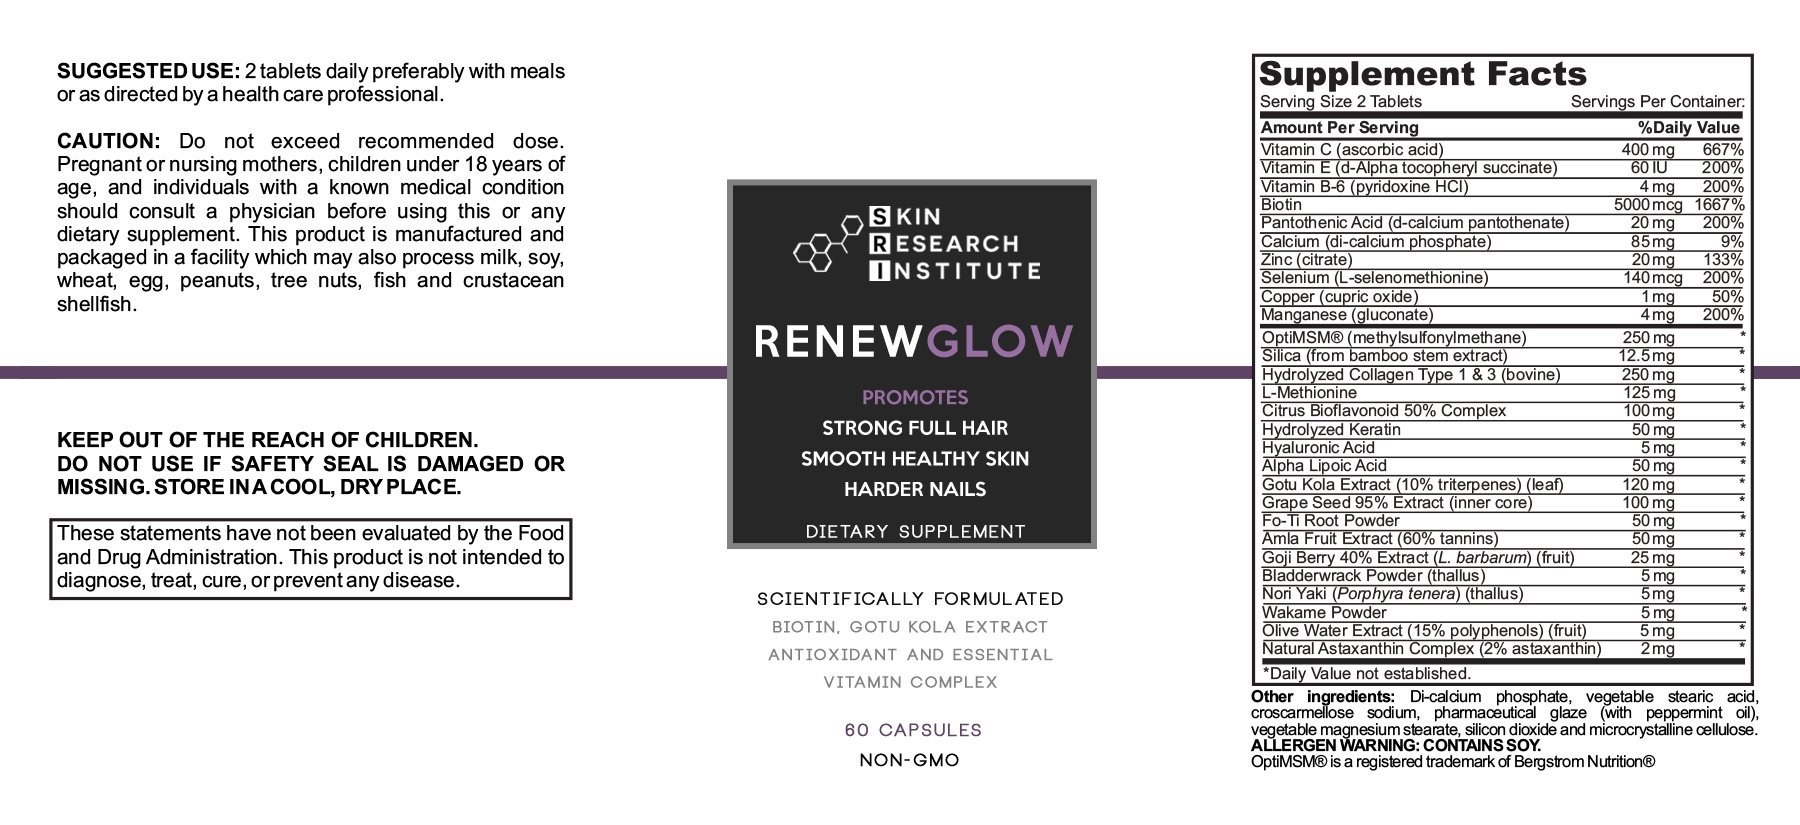 Renewglow - Anti Aging Supplement Fights Against Biotin Deficiency, Free Radicals and Prevents Oxidation to Restore Hair and Skin for A Healthy Glow (3 - Pack) by skin research institute (Image #3)